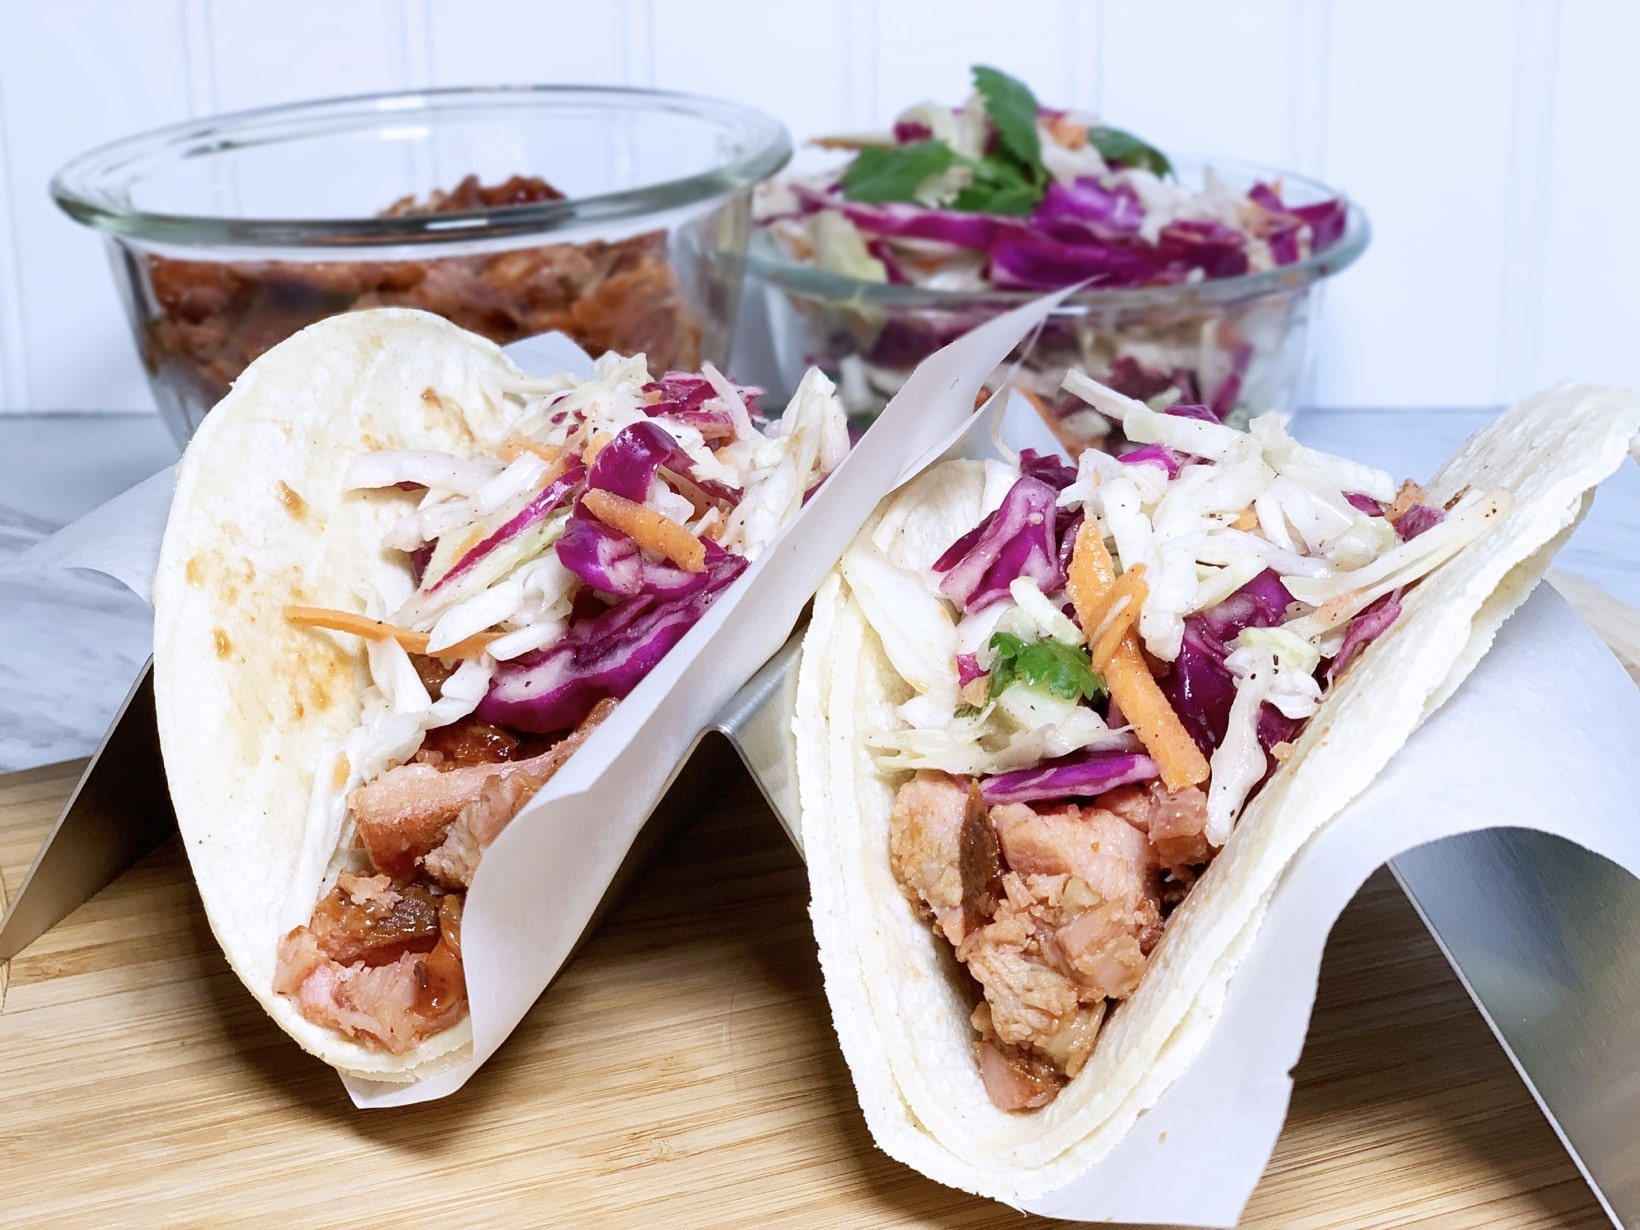 Rib tacos with slaw and meat f